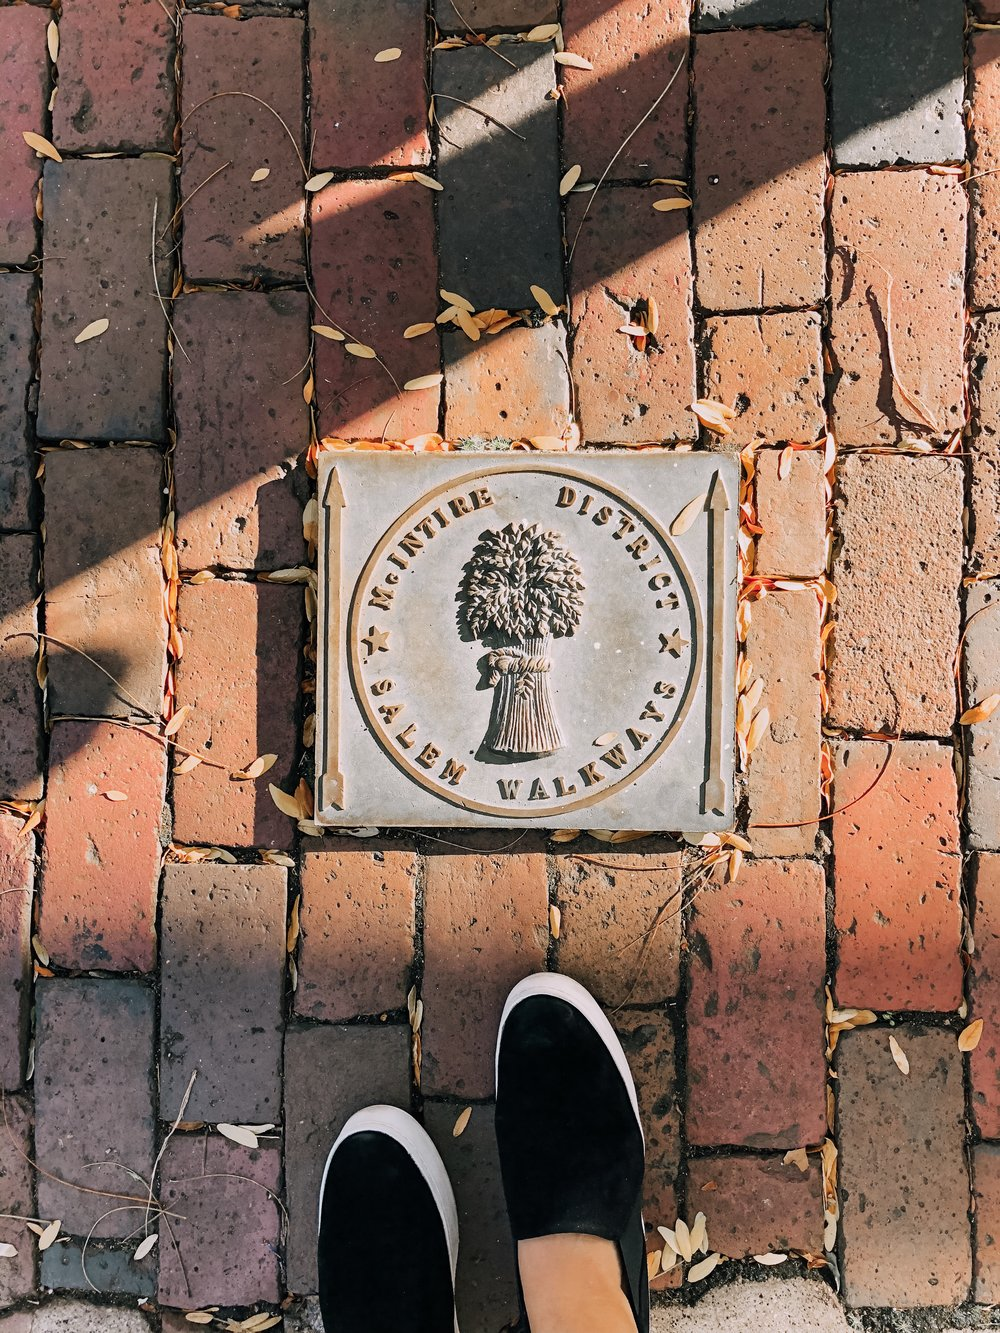 salem-massachusetts-brick-road.jpg